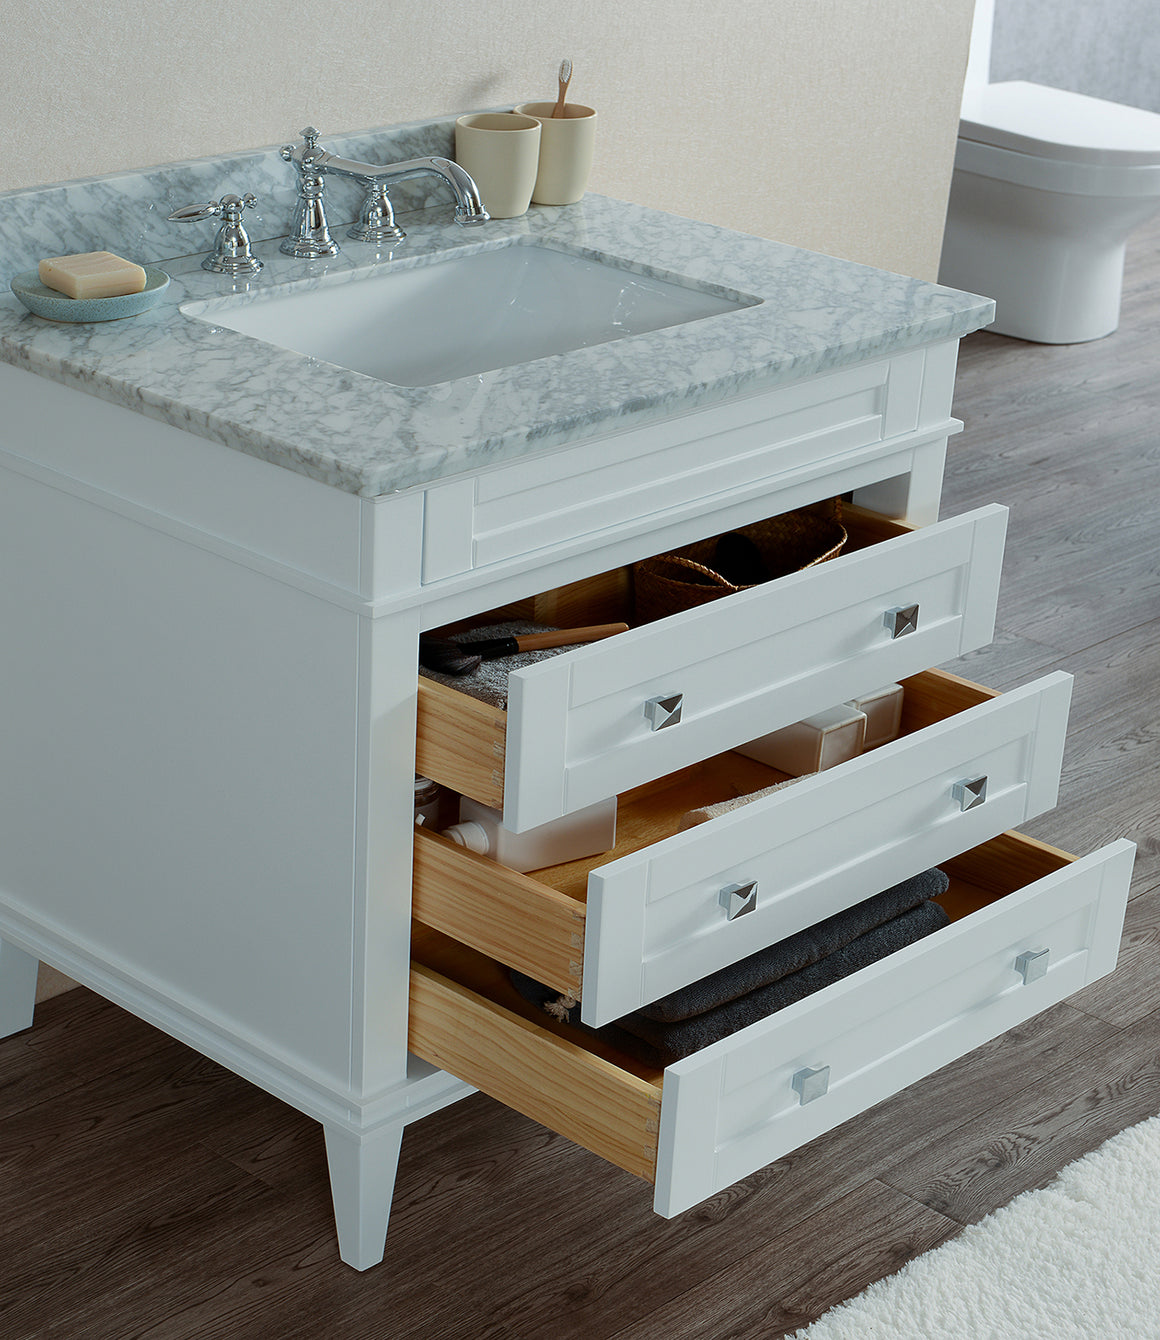 "Alex 36"" Single Bathroom Vanity Set in White"